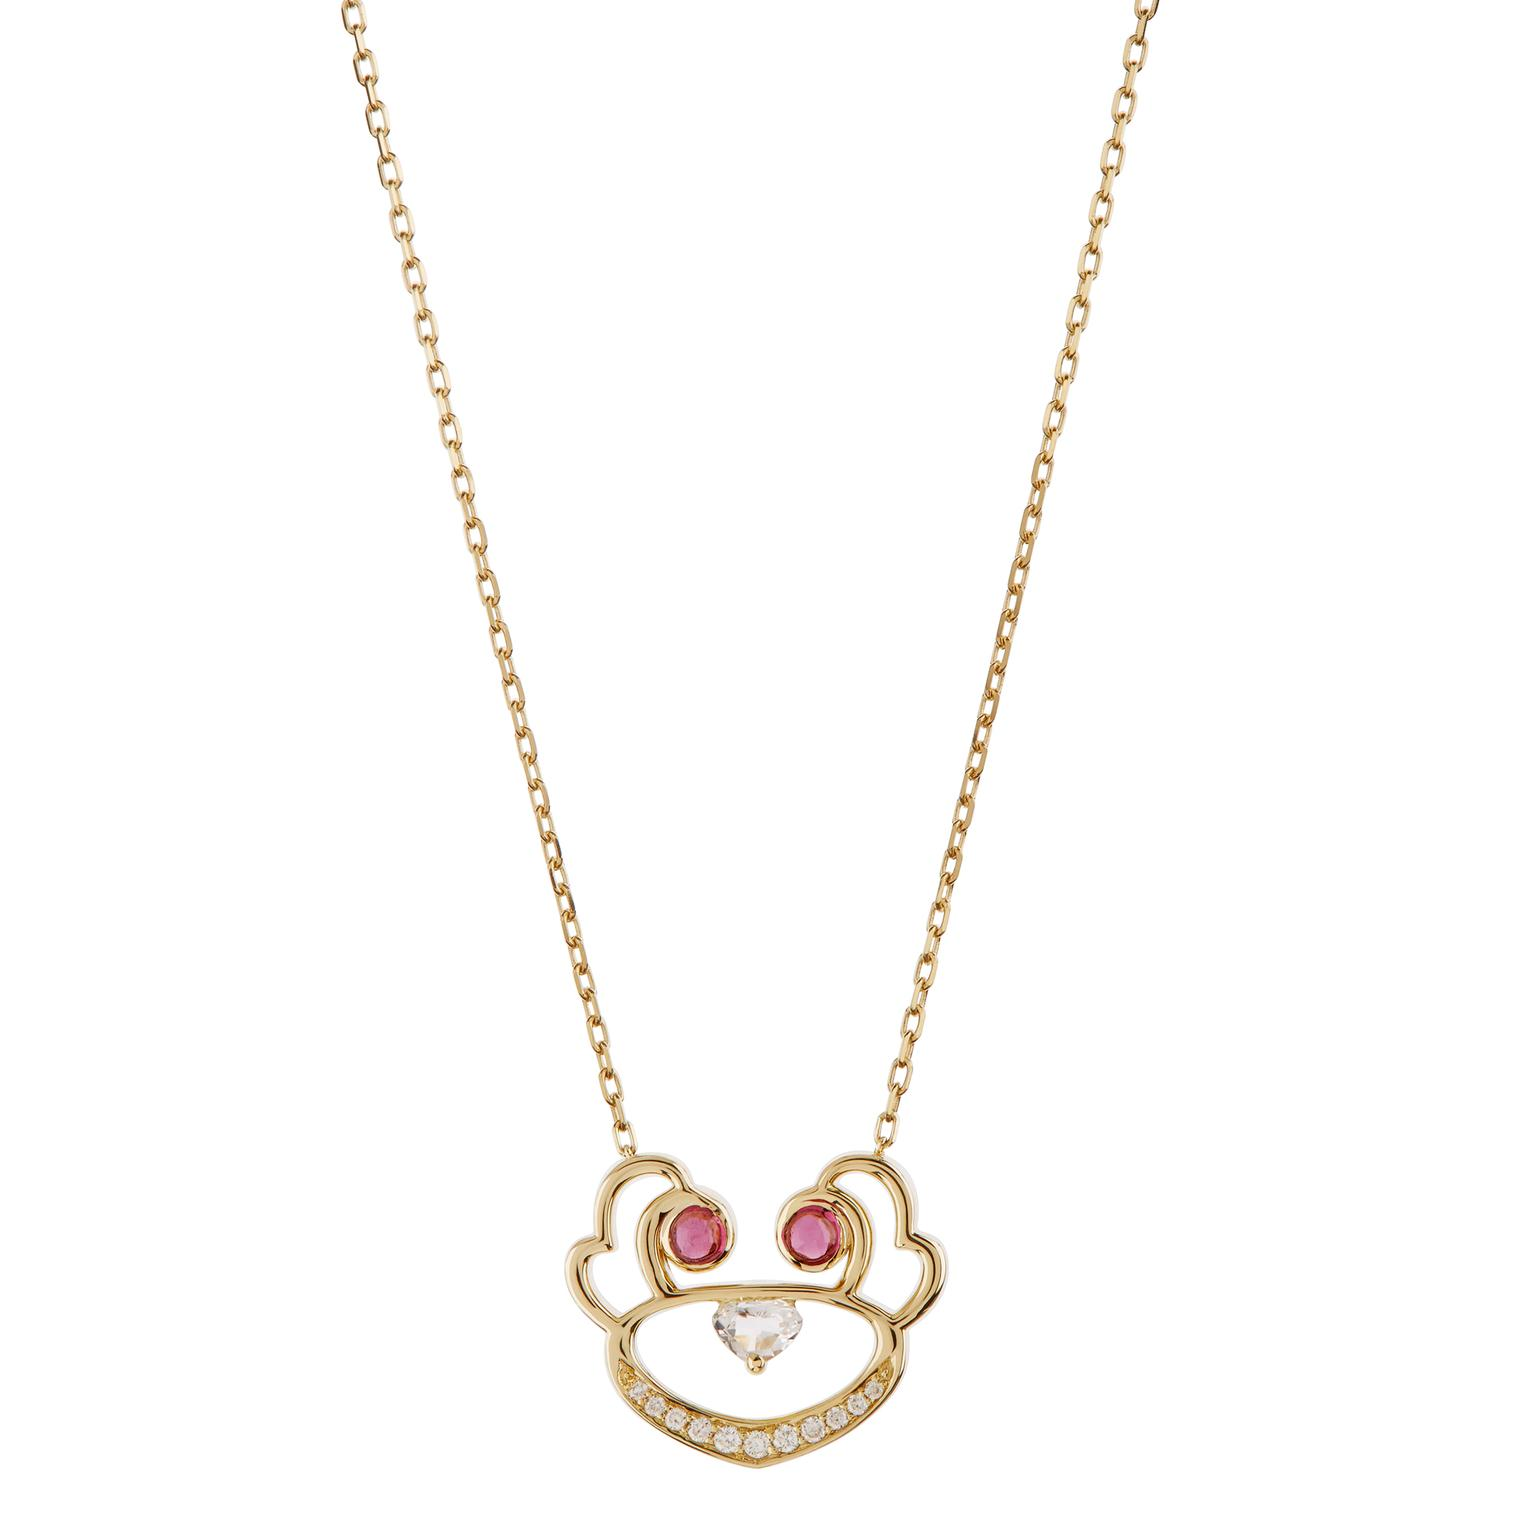 Ruifier Visage Animaux Koko pendant with diamonds